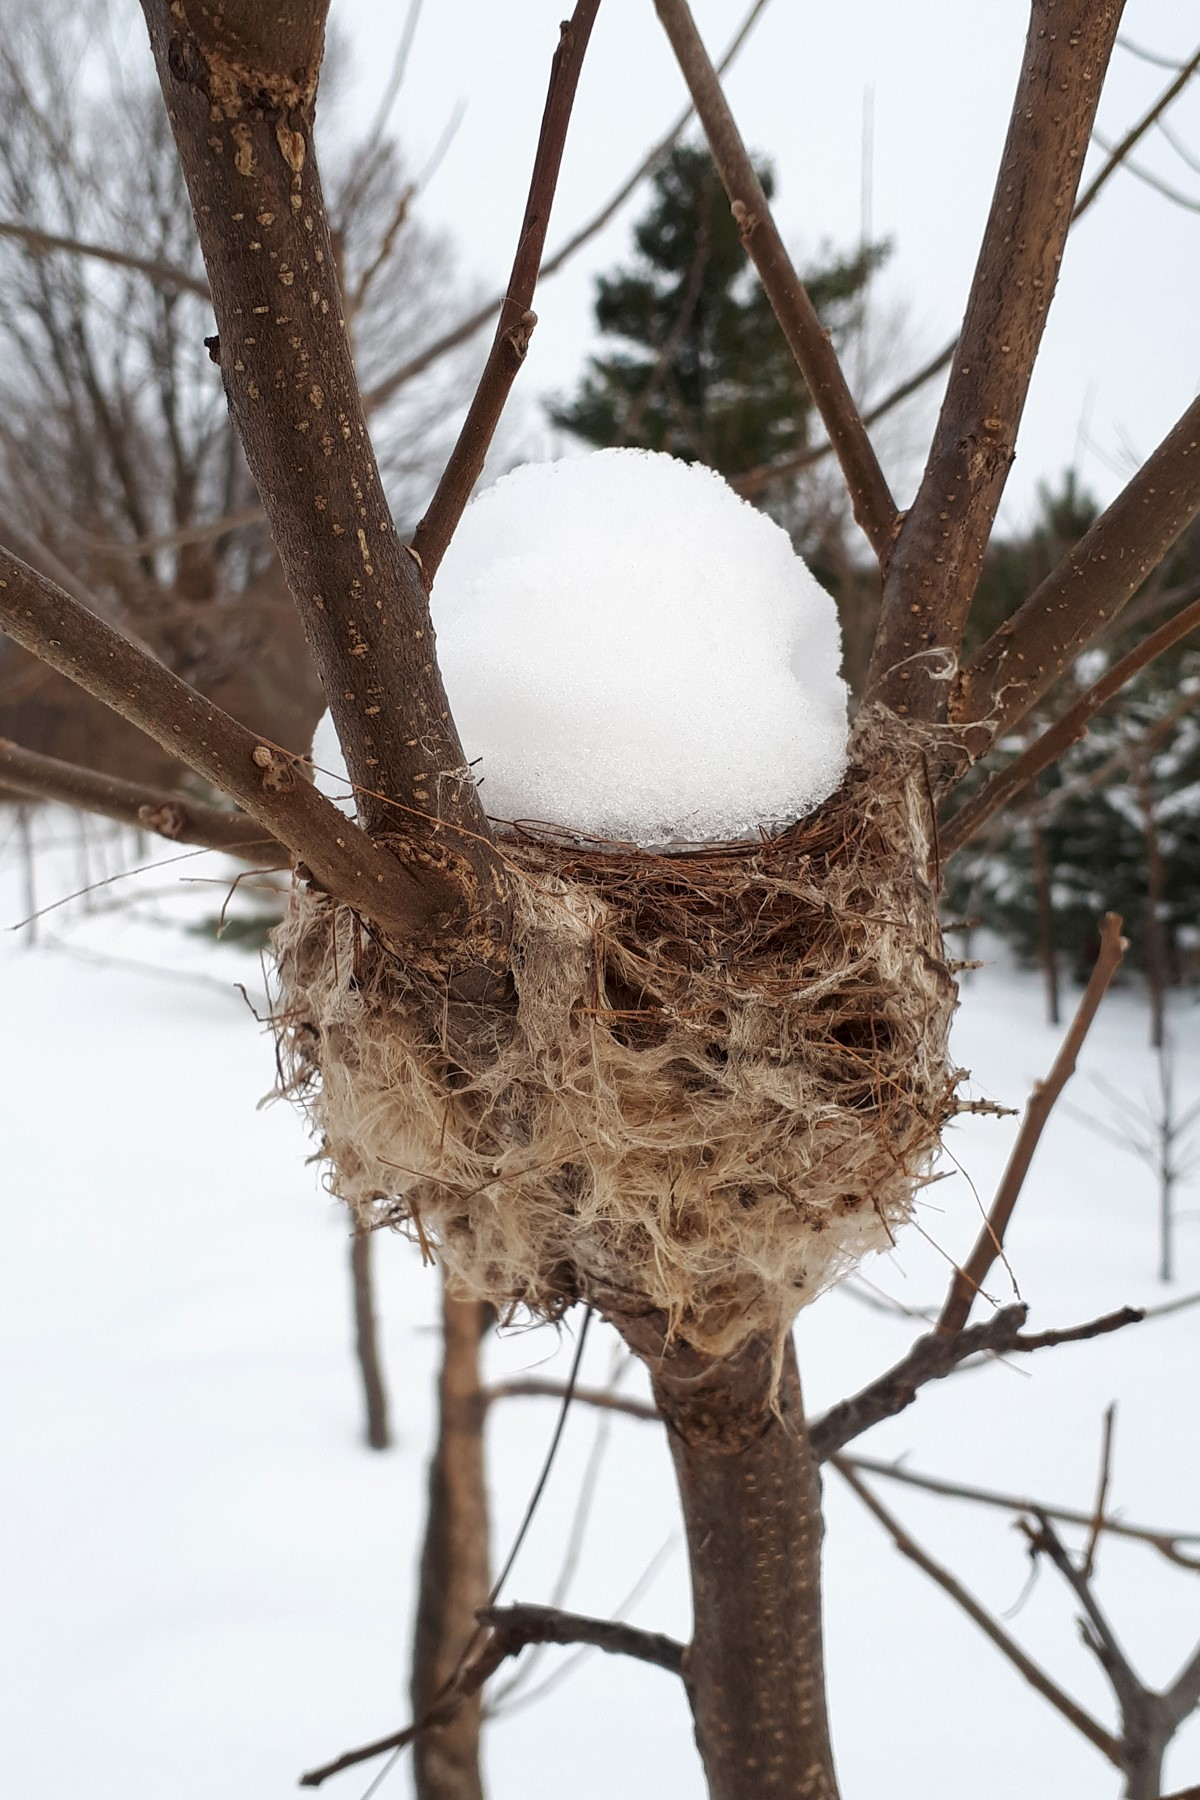 Winter reveals some of Nature's secrets